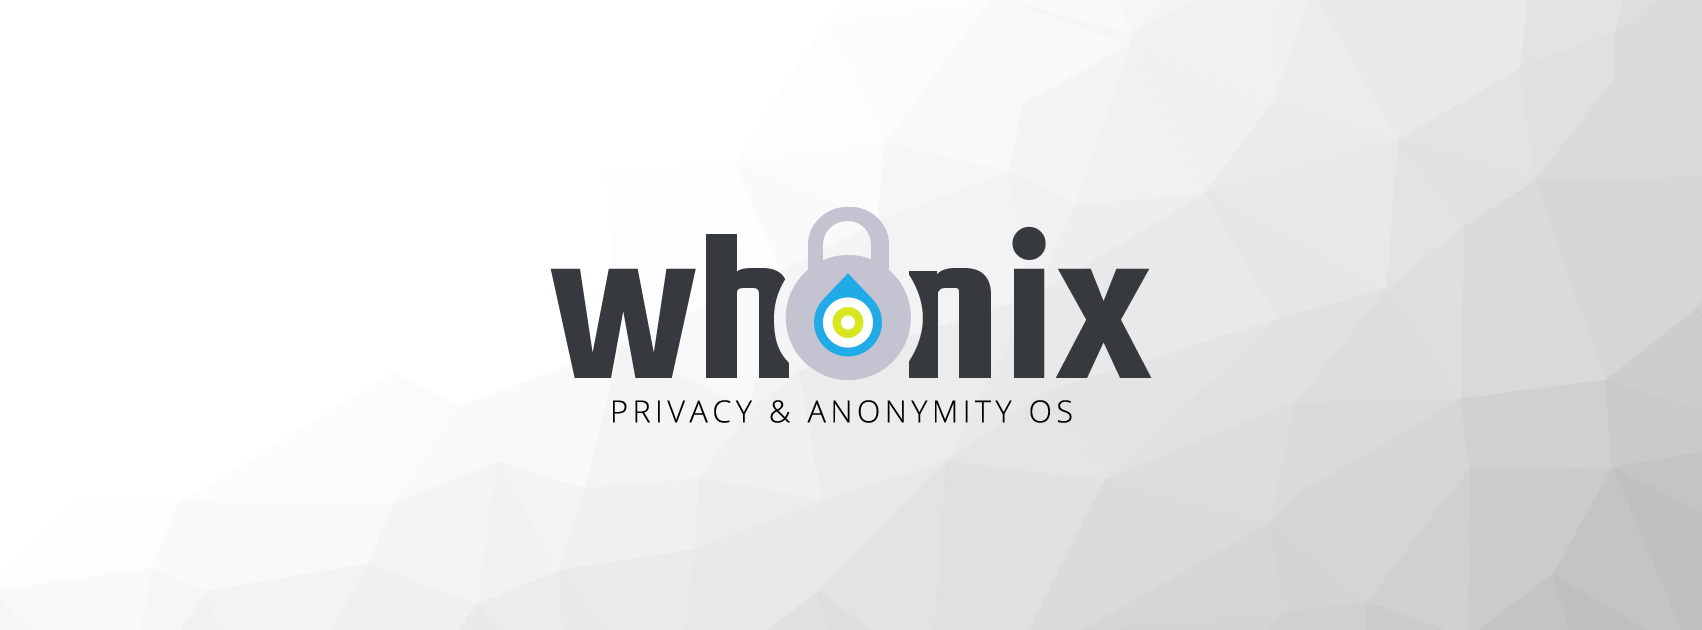 Whonix Facebook Cover.png